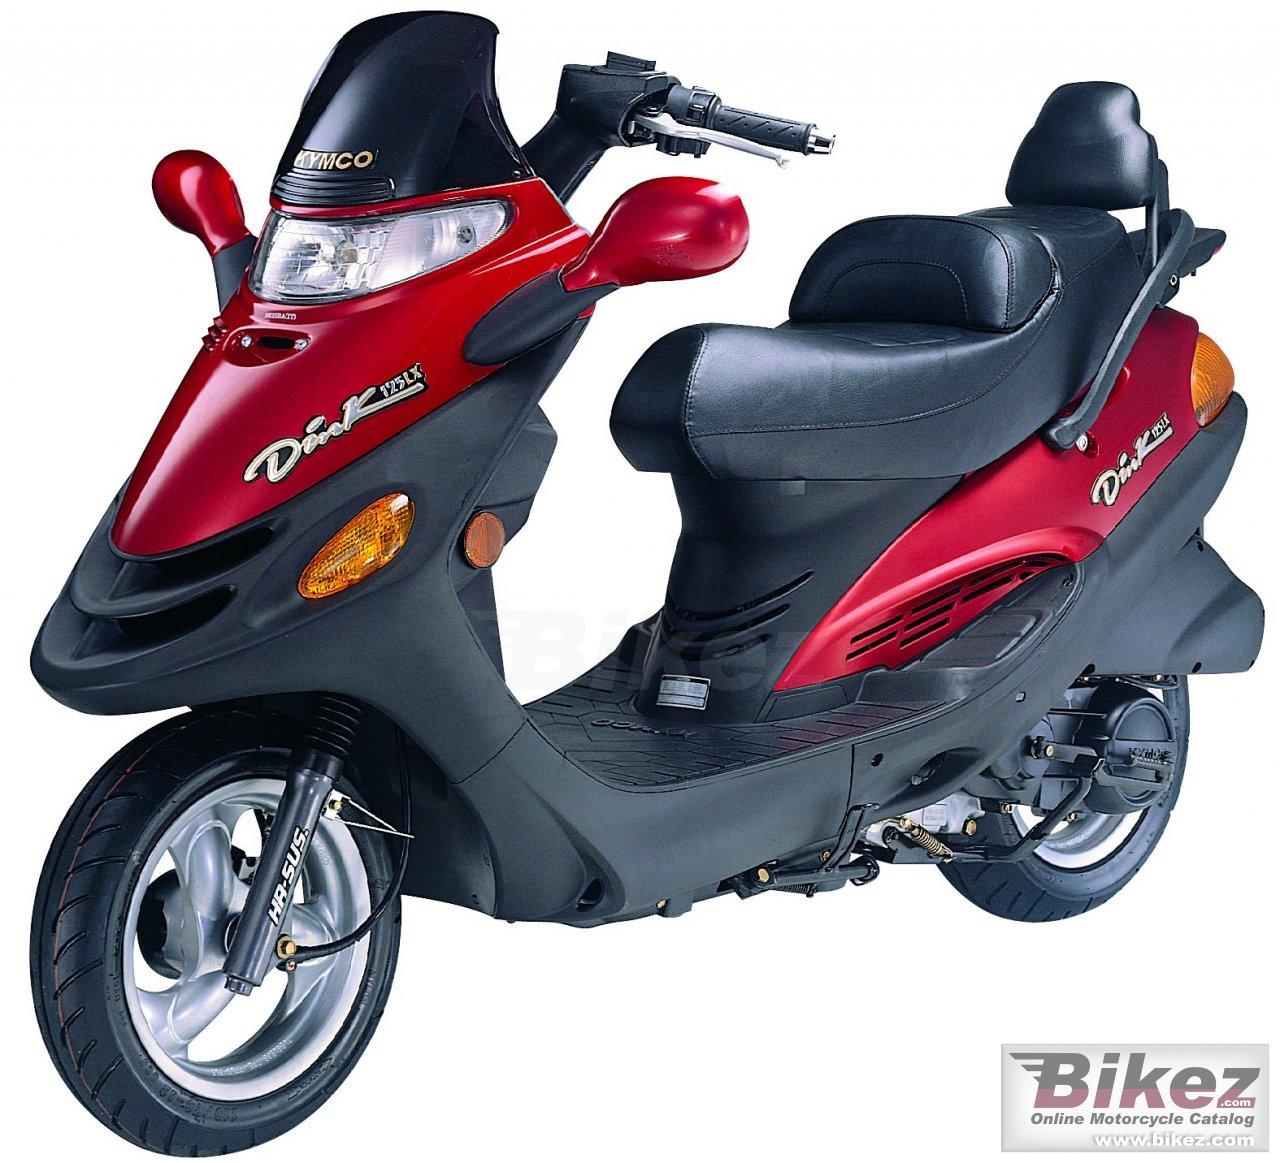 Kymco Zing 150 1997 images #99661